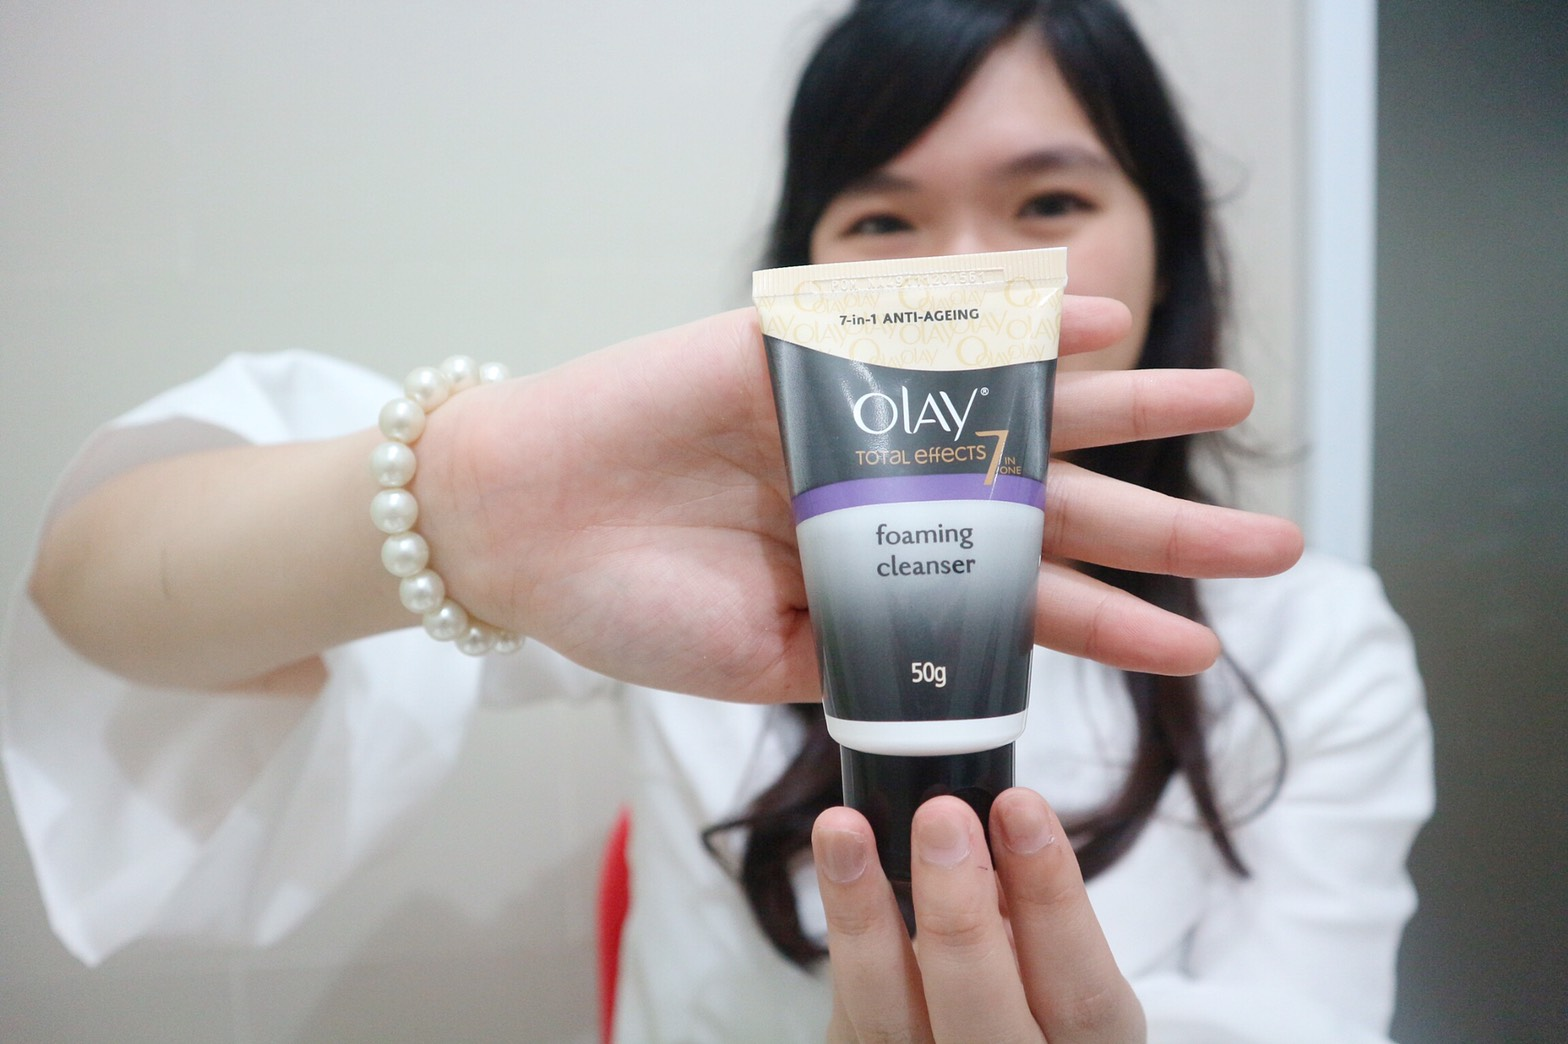 Review Olay Total Effects 7 In One Jssicanovias World Effect Foaming Cleanser 50gr Pore Minimizing Toner